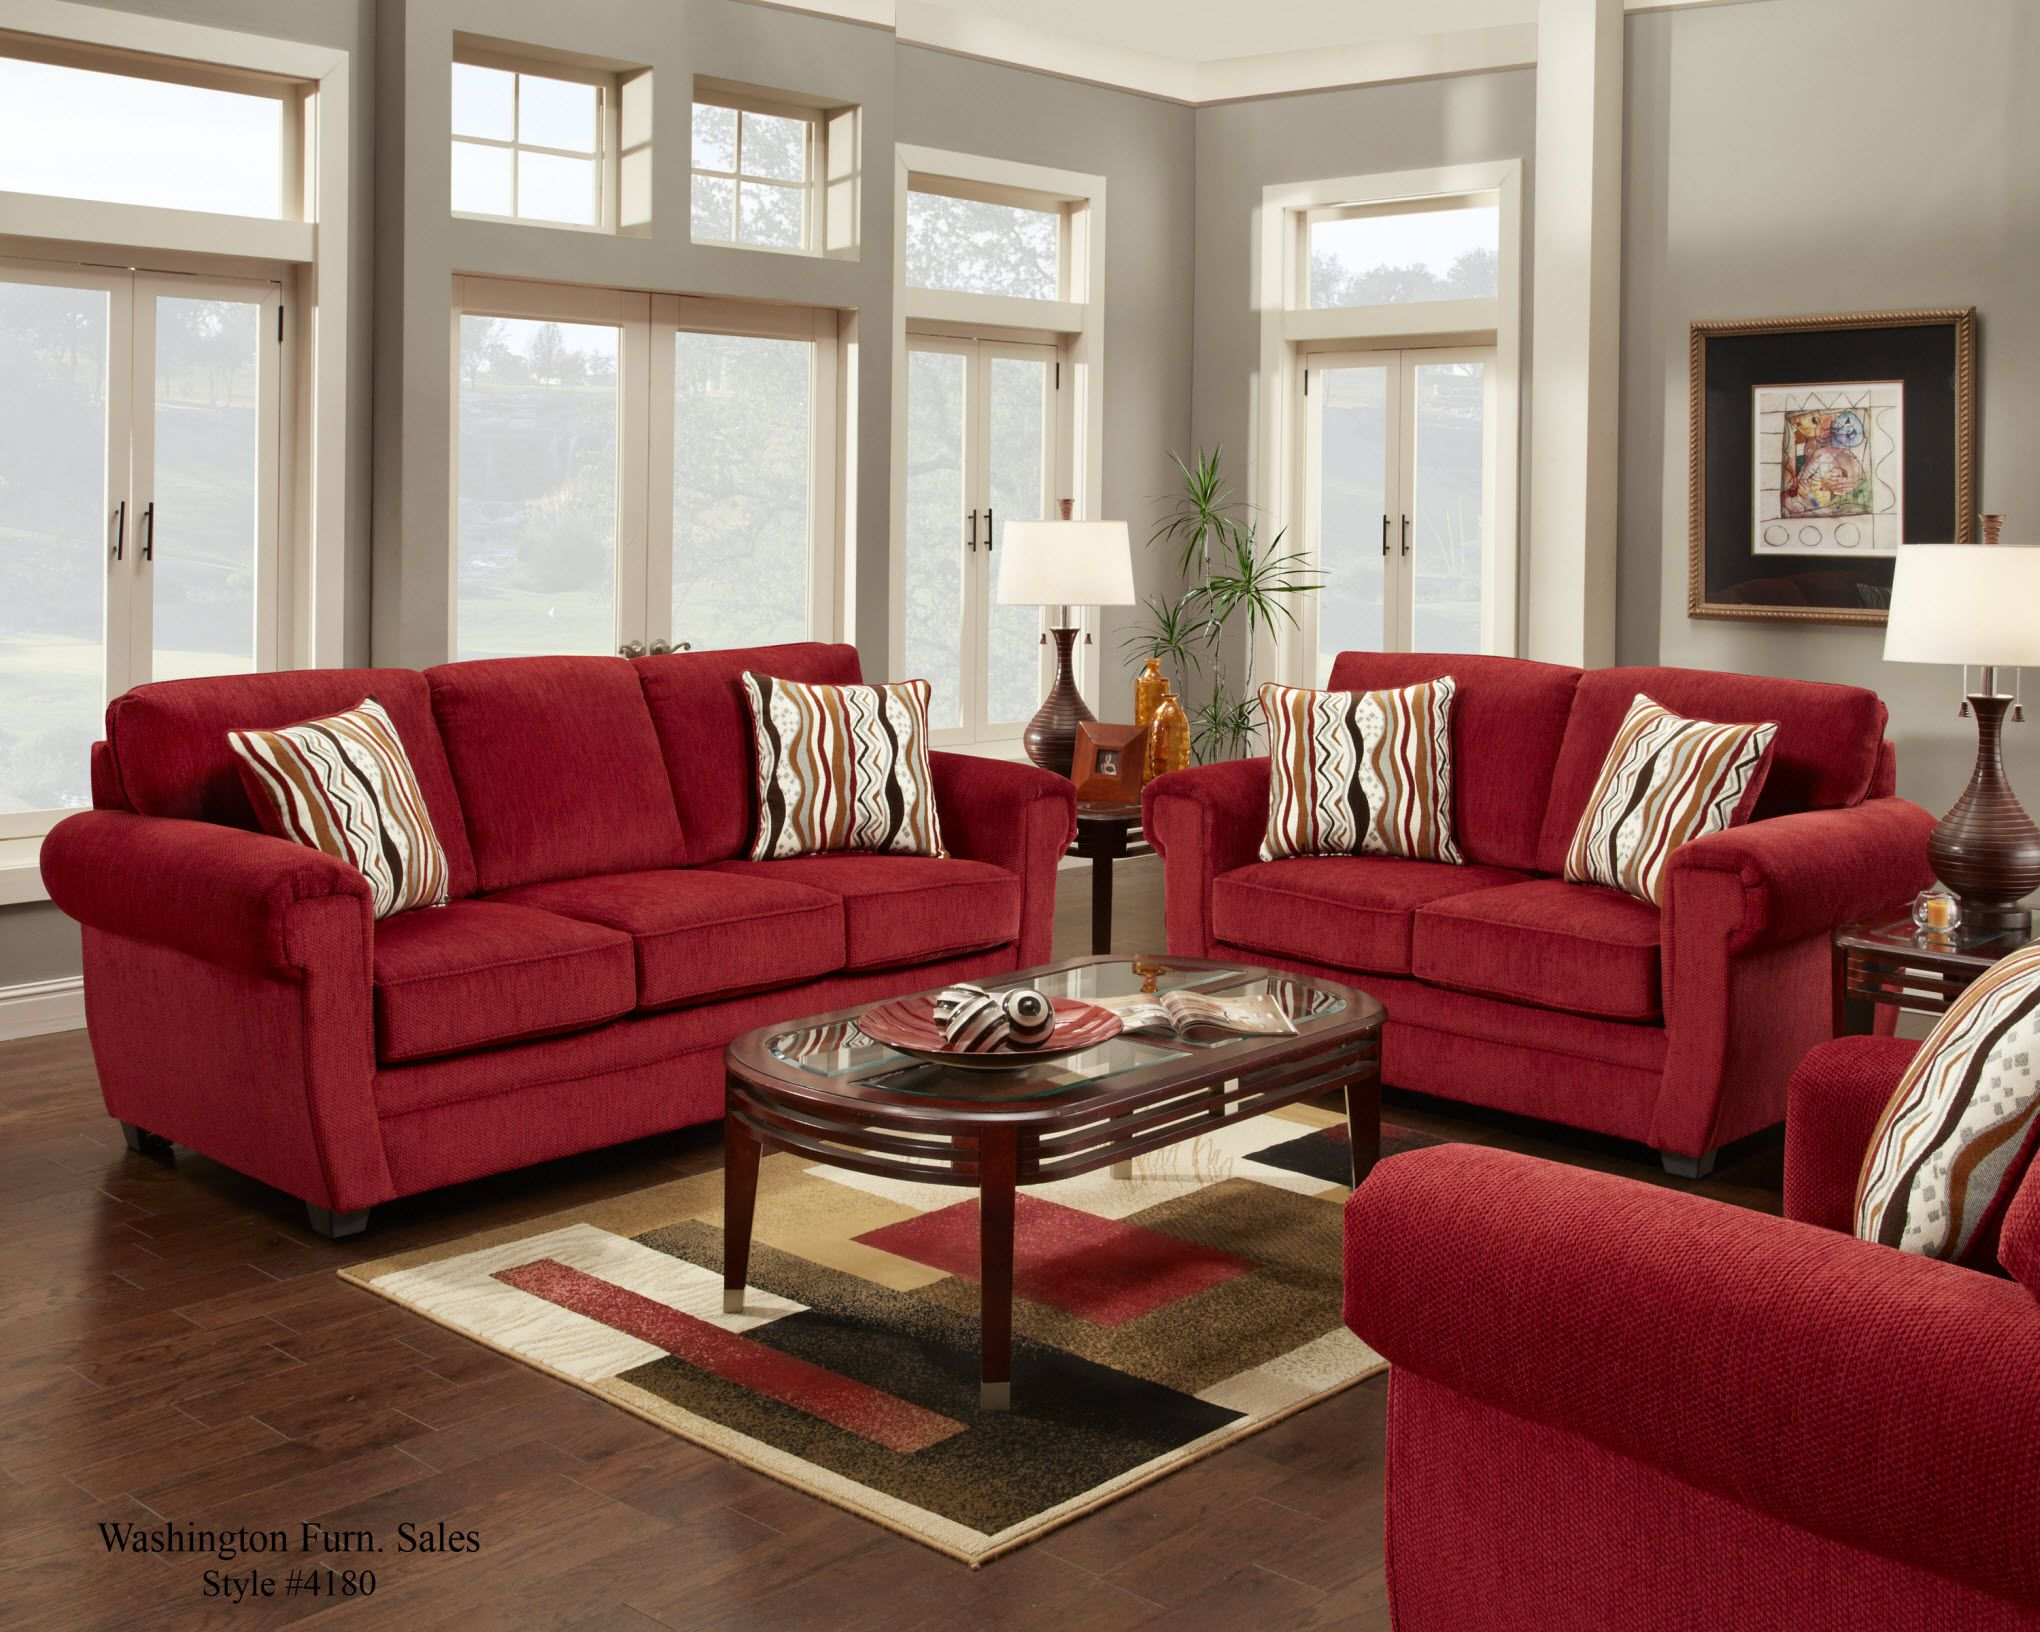 Living Room With Red Sofa 4180 Washington Samson Red Sofa And Loveseat Wwwfurnitureurban